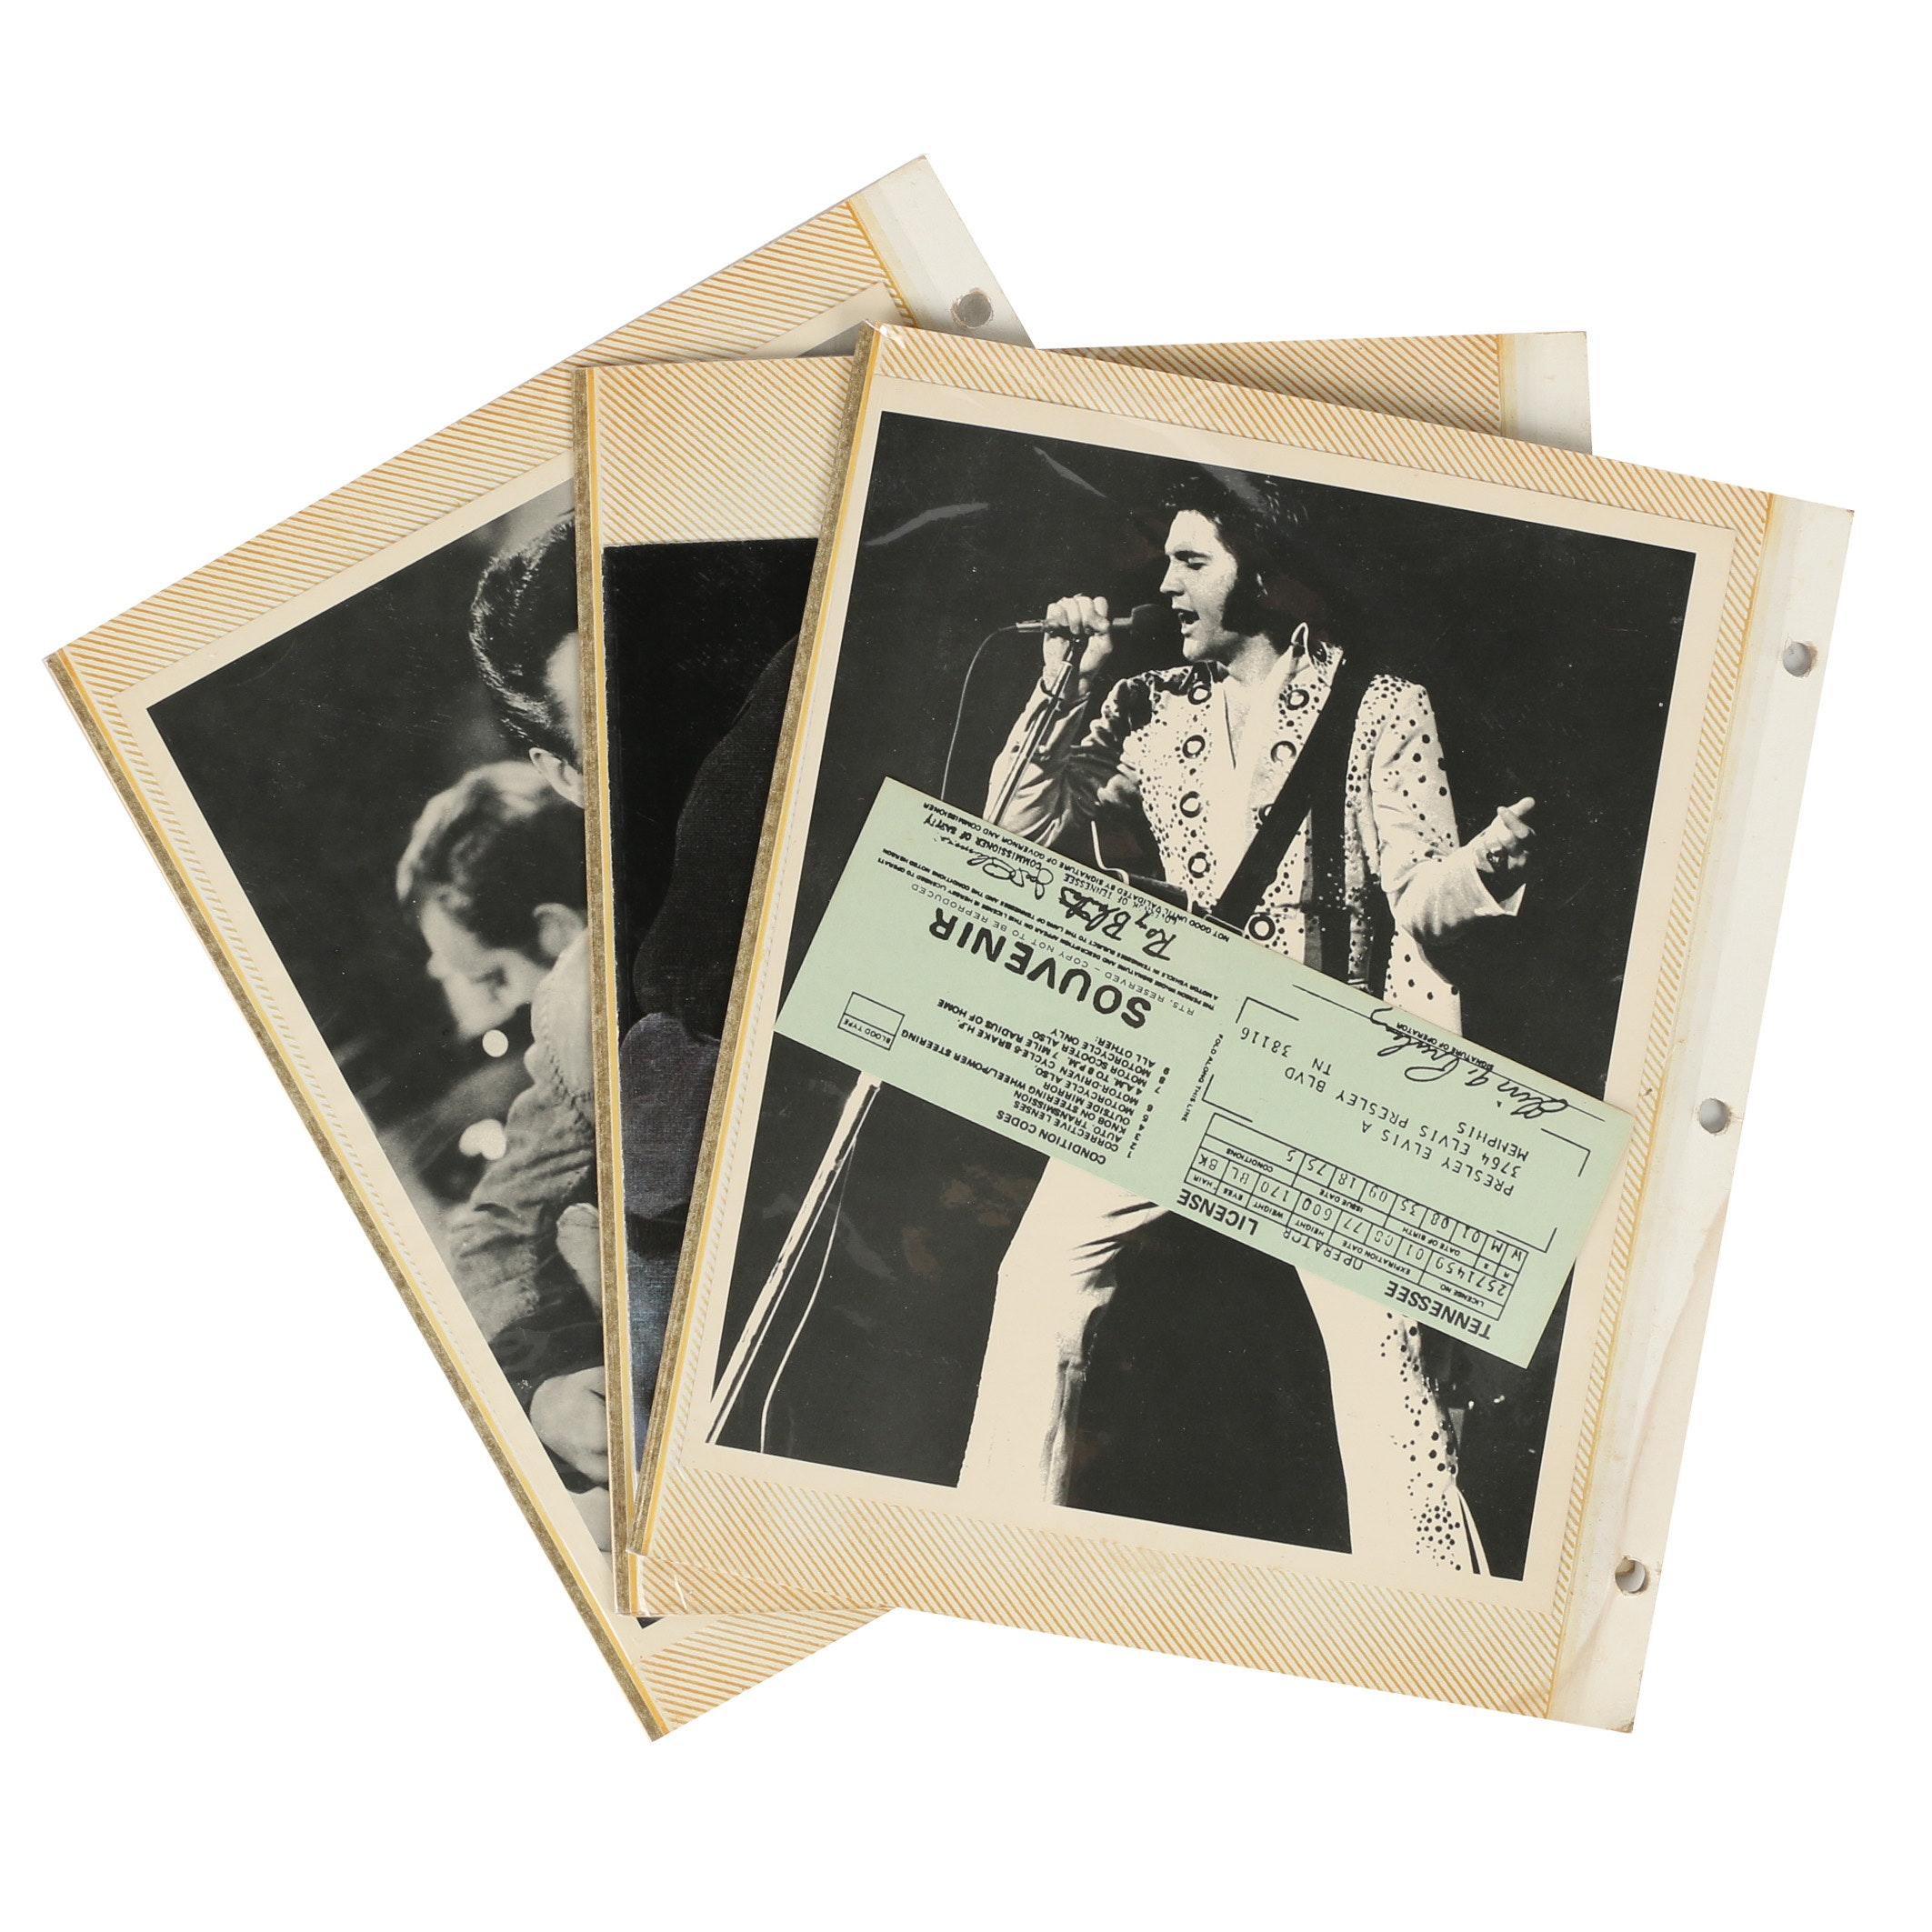 Elvis Presley Photographs and Ephemera